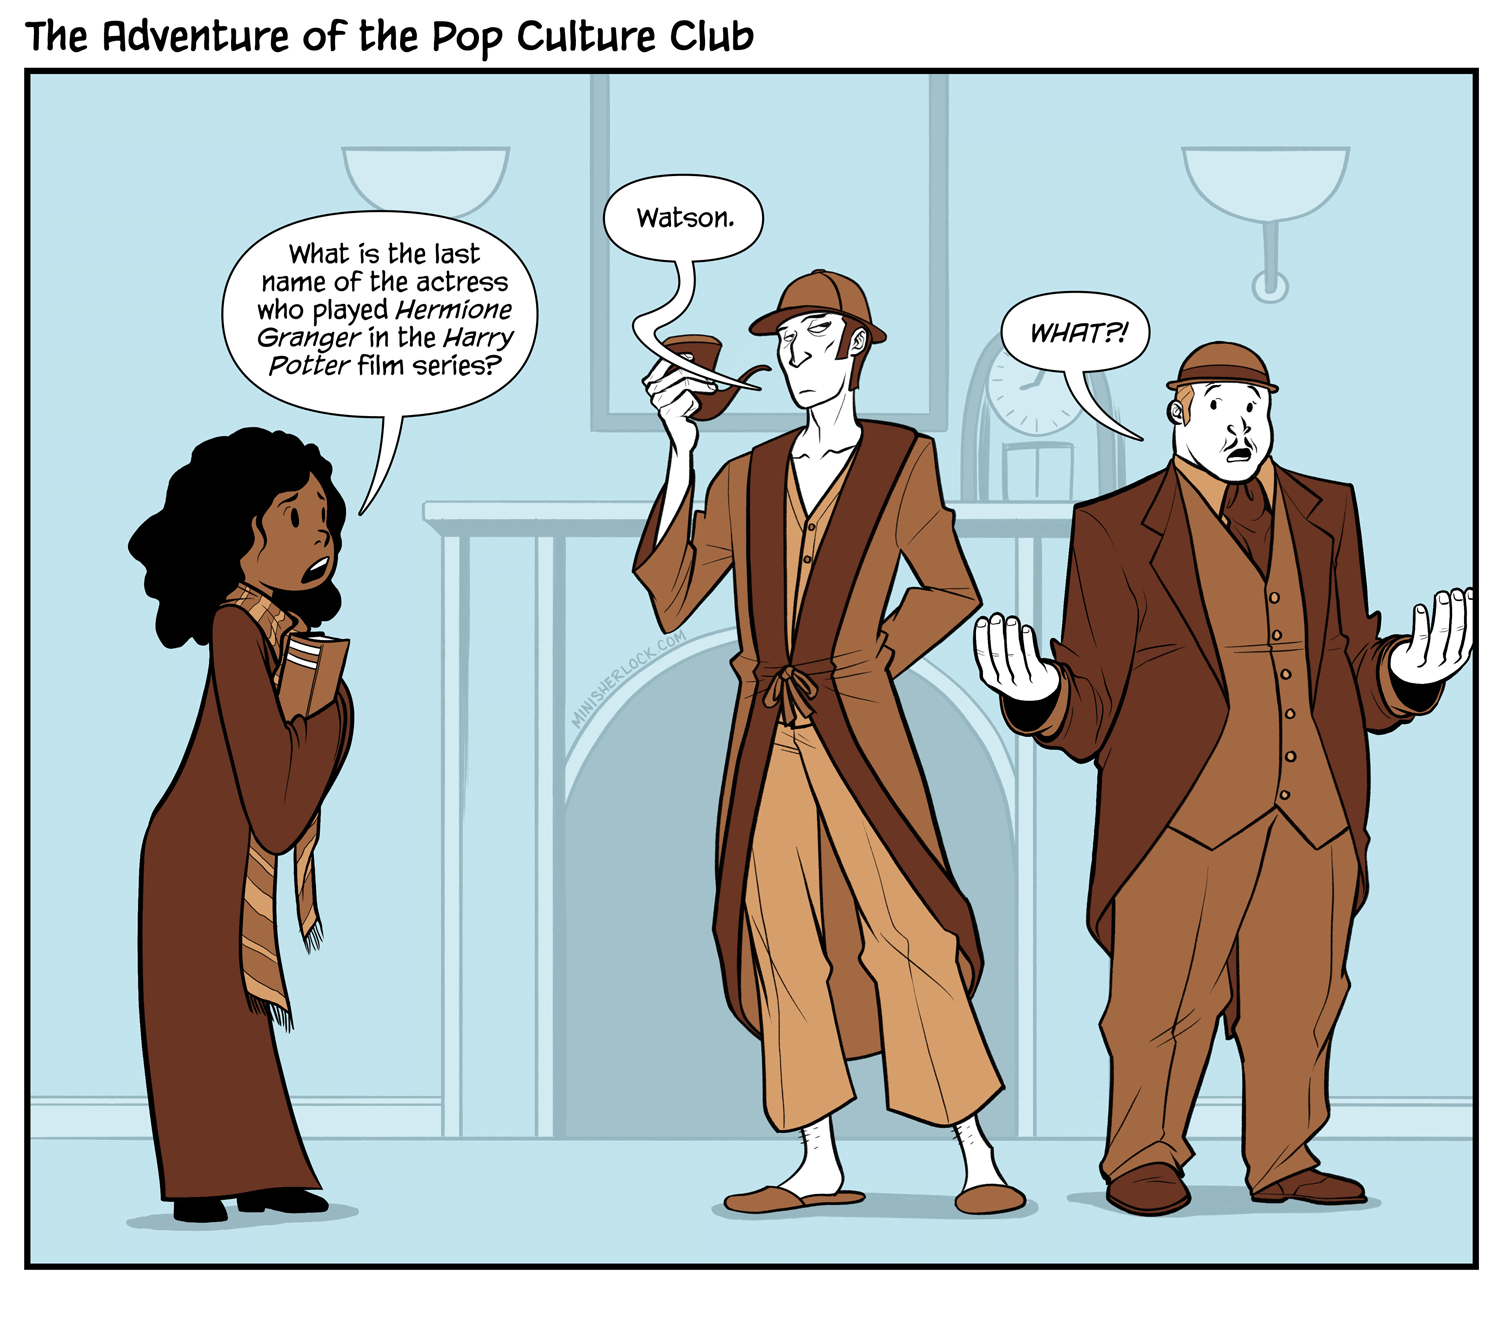 The Adventure of the Pop Culture Club